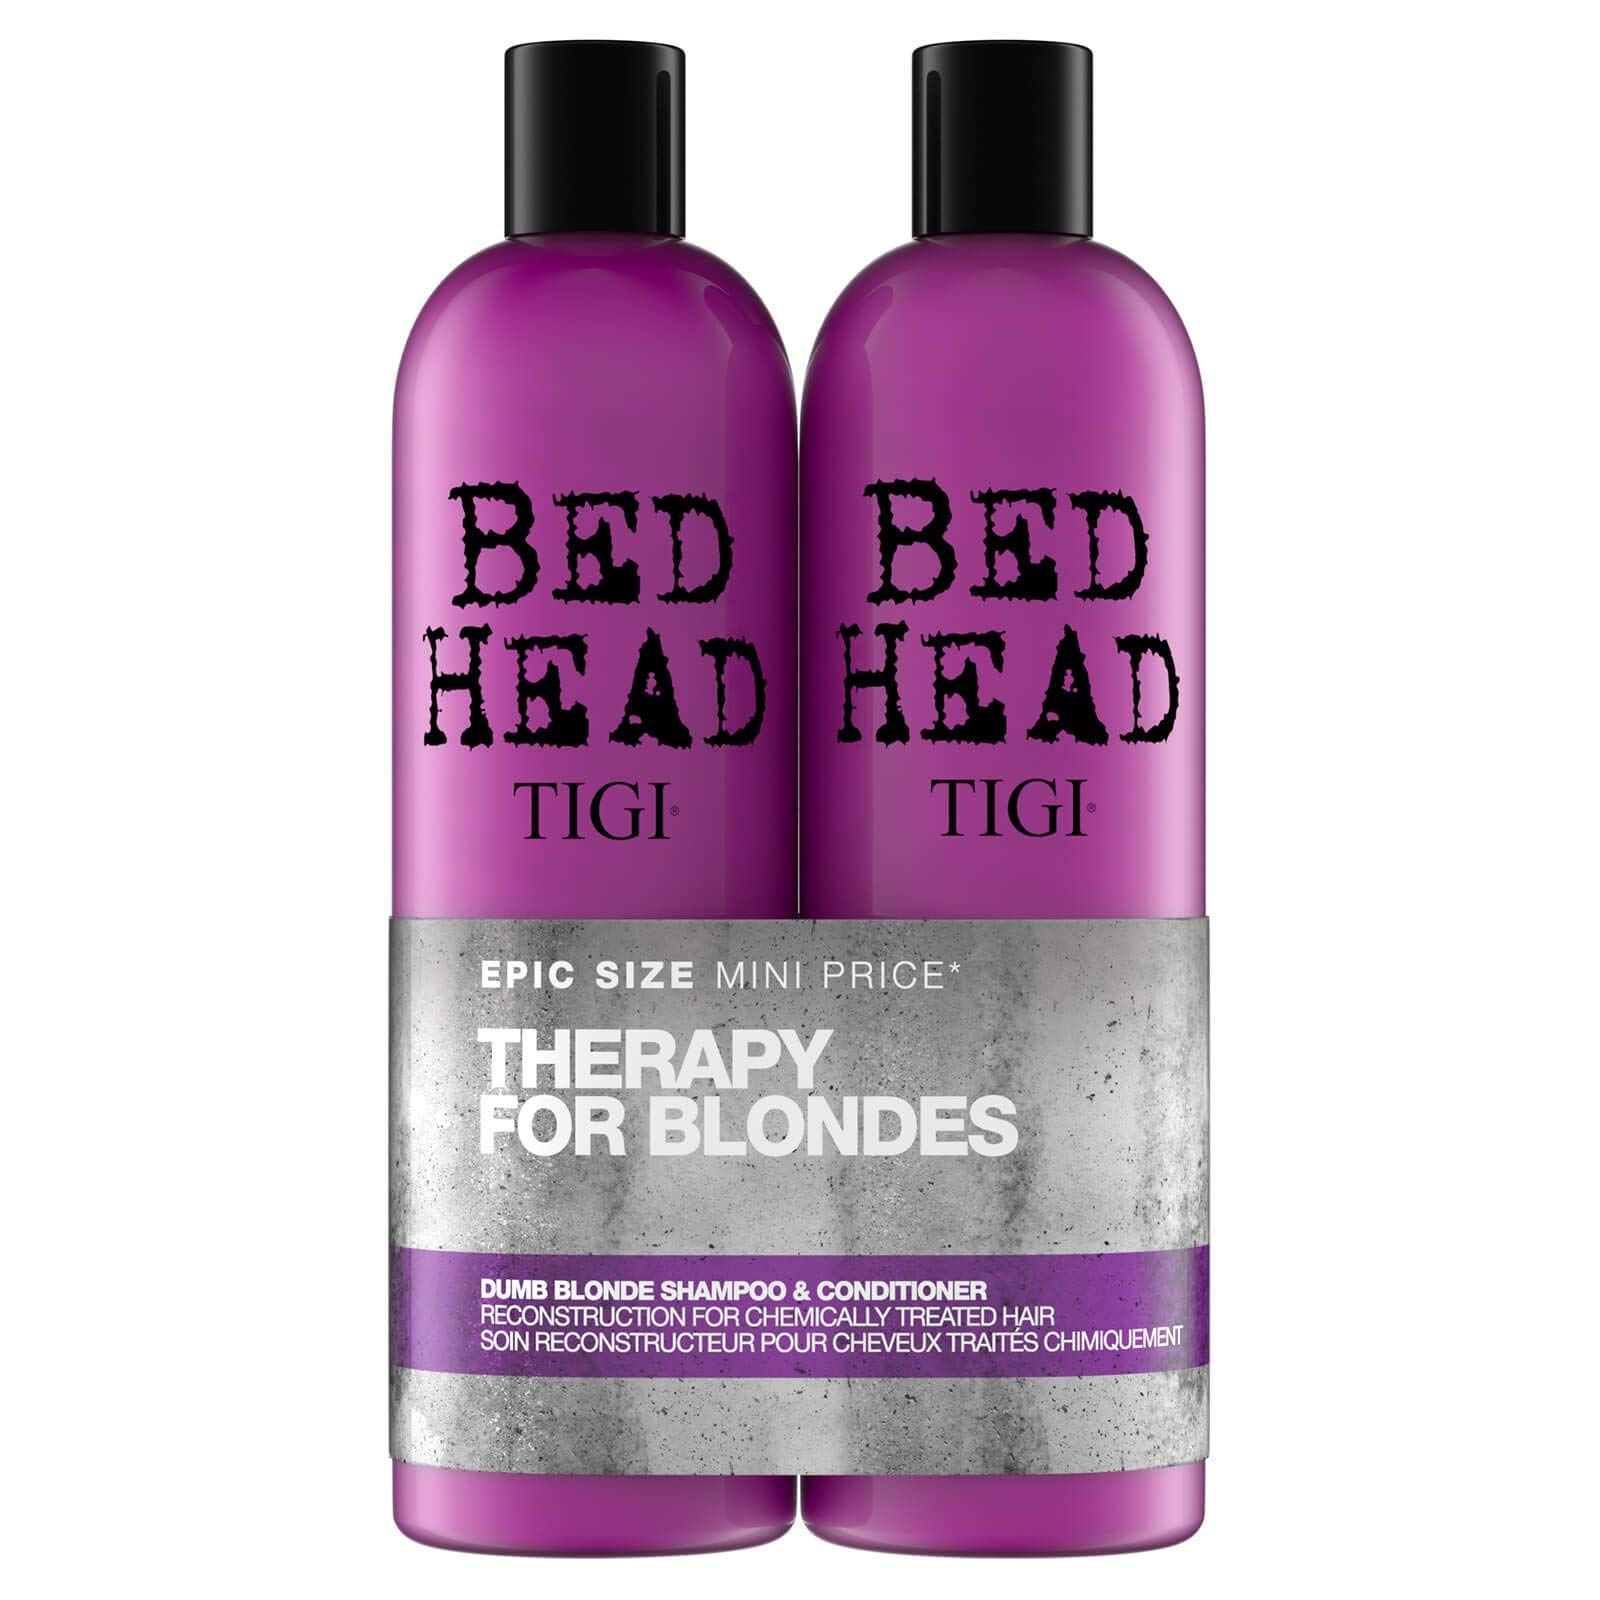 Bed Head by Tigi Dumb Blonde Shampoo and Conditioner for Blonde Hair 2 x 750 ml